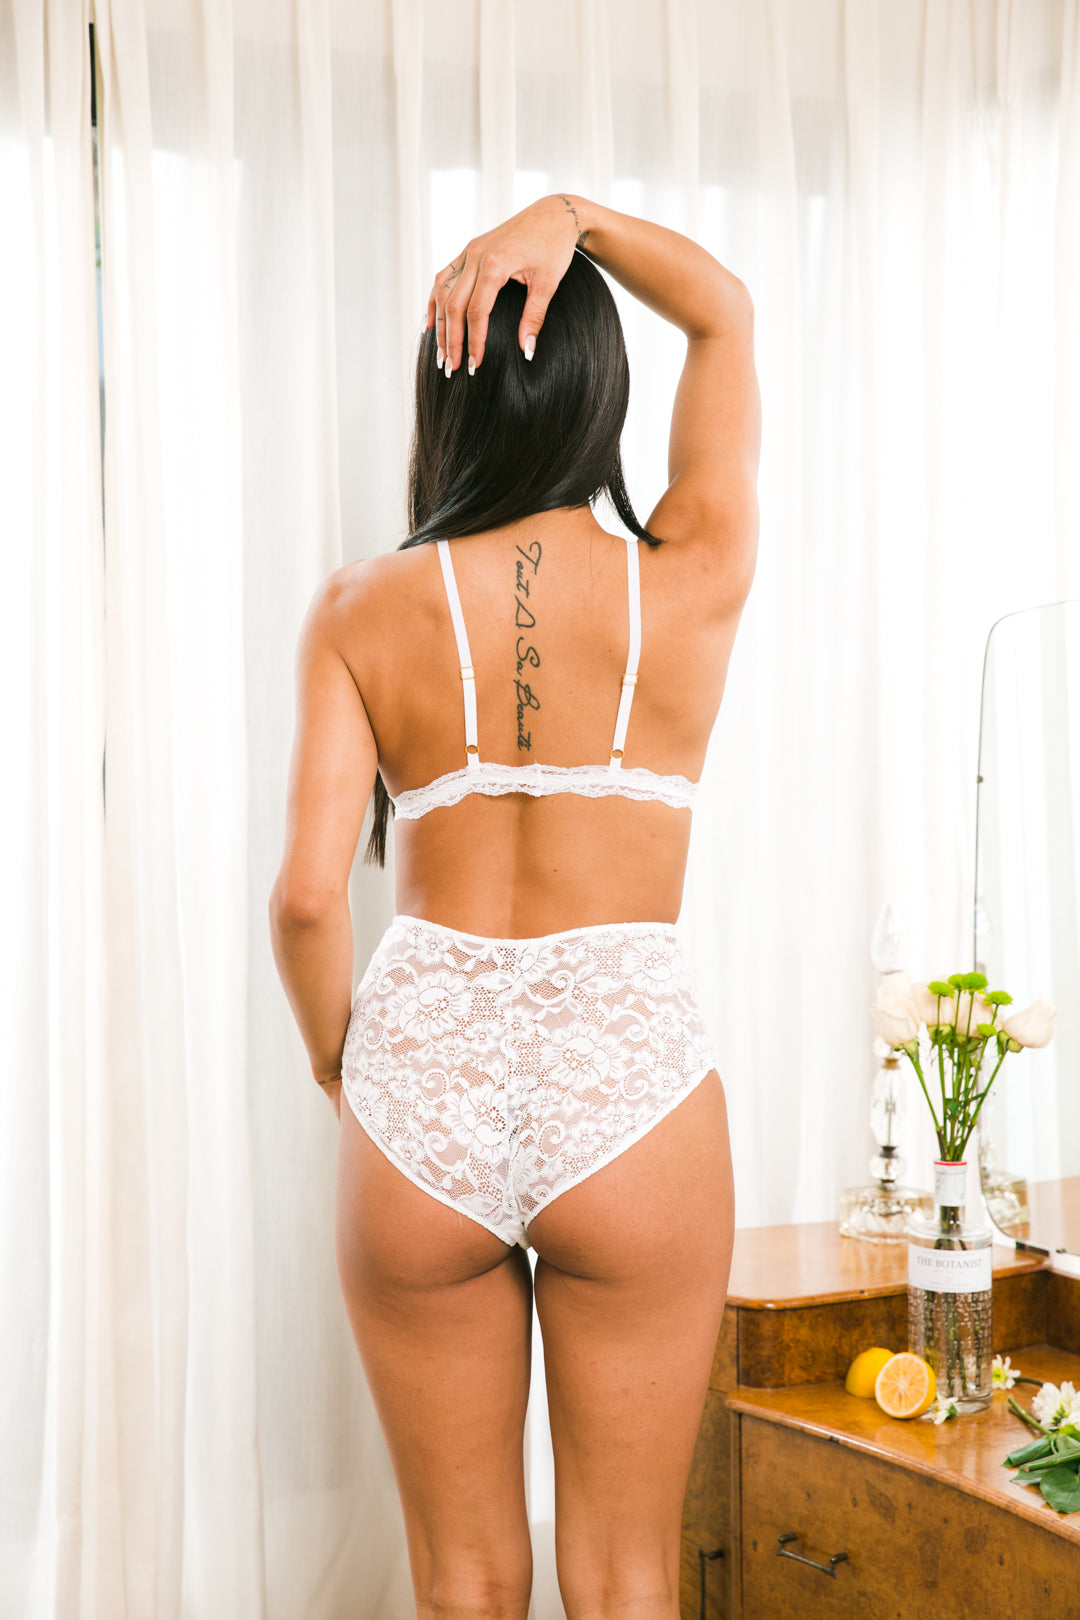 HAH's high-waisted, full coverage bottom is made of sexy, stretch lace. These panties are the perfect addition to a lingerie set or under a feminine dress.